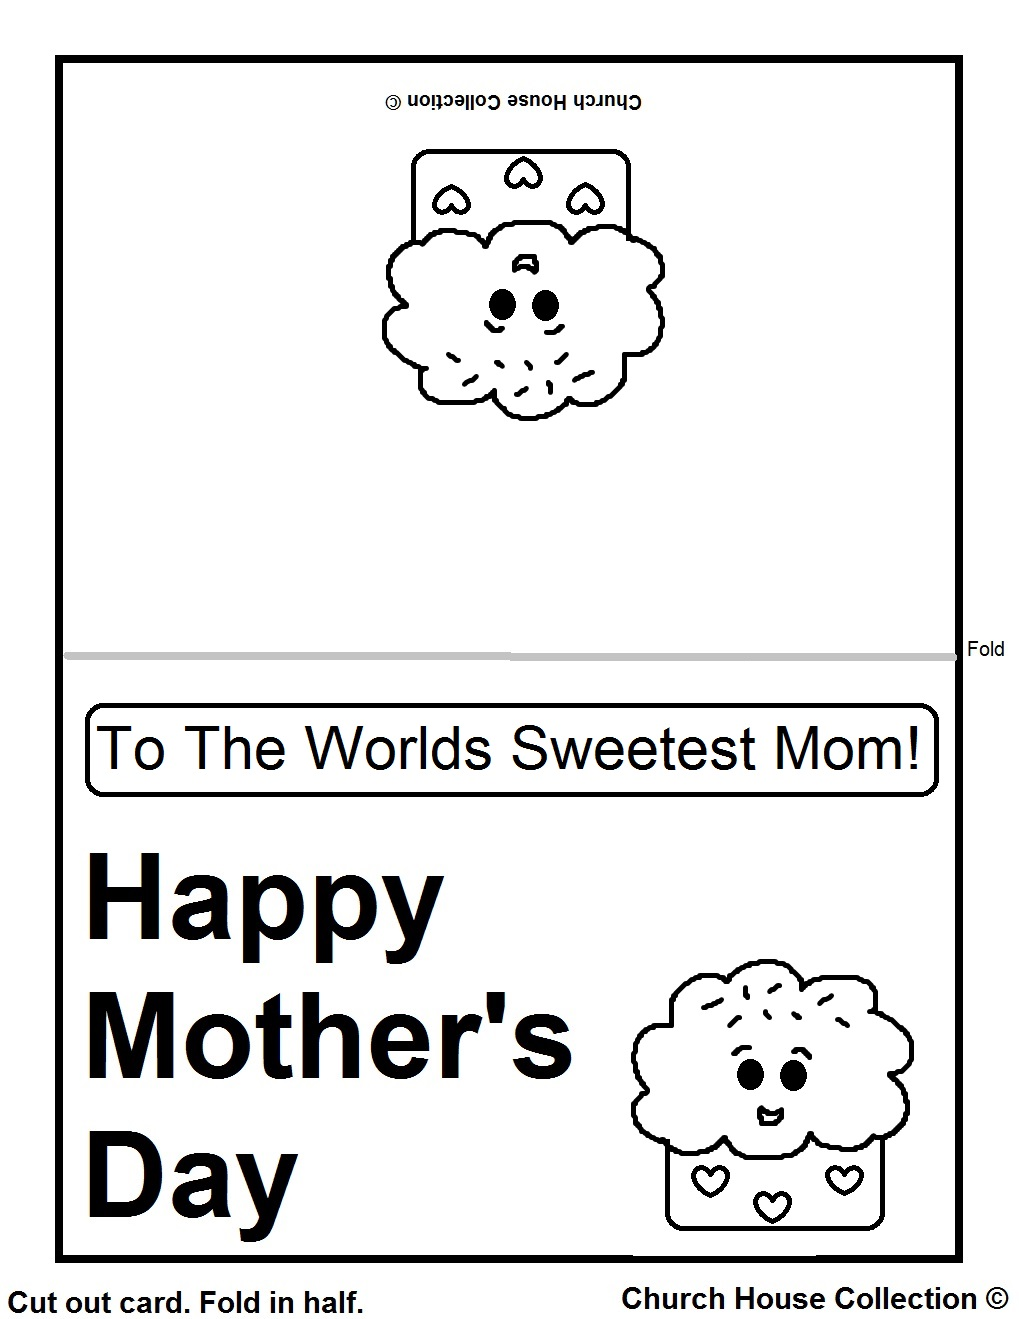 Color cards for kids - Printable Card Colored Or Black And White